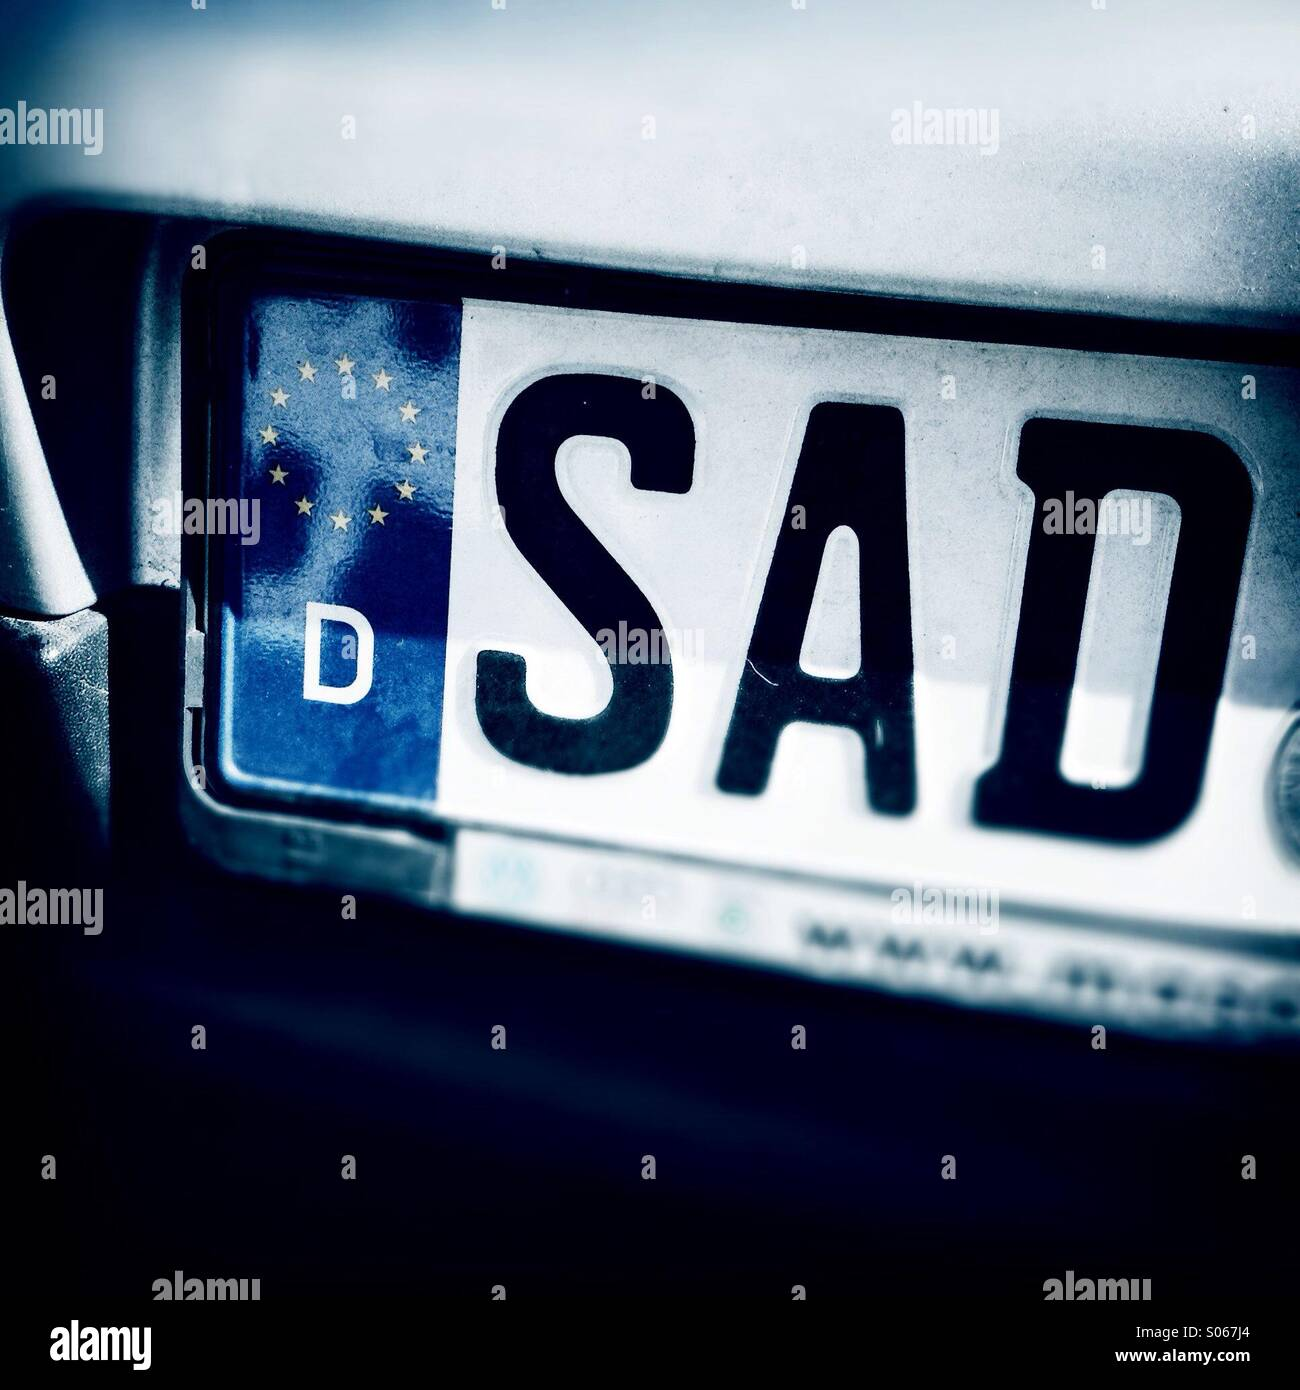 Sad letters. License plate of Schwandorf, Bayern, Germany, Europe - Stock Image